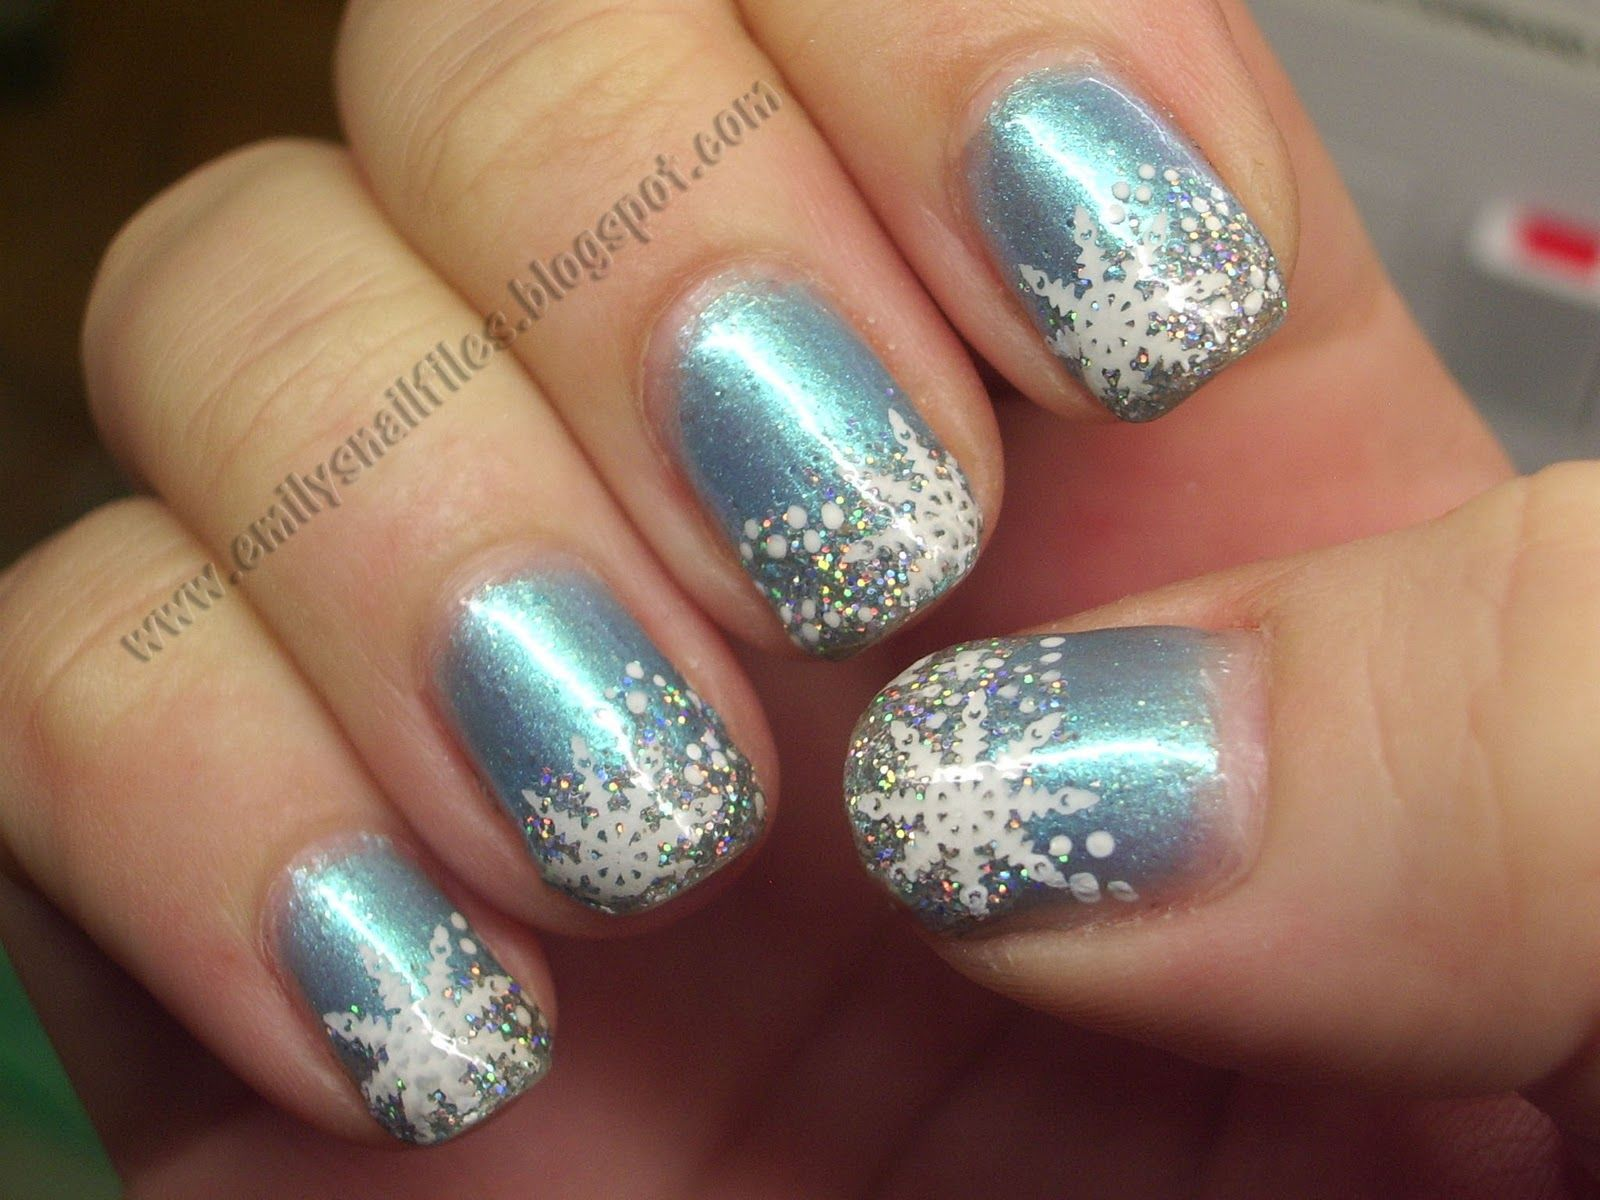 Snowflake_Nail_Design | Nails | Pinterest | Christmas nail ...